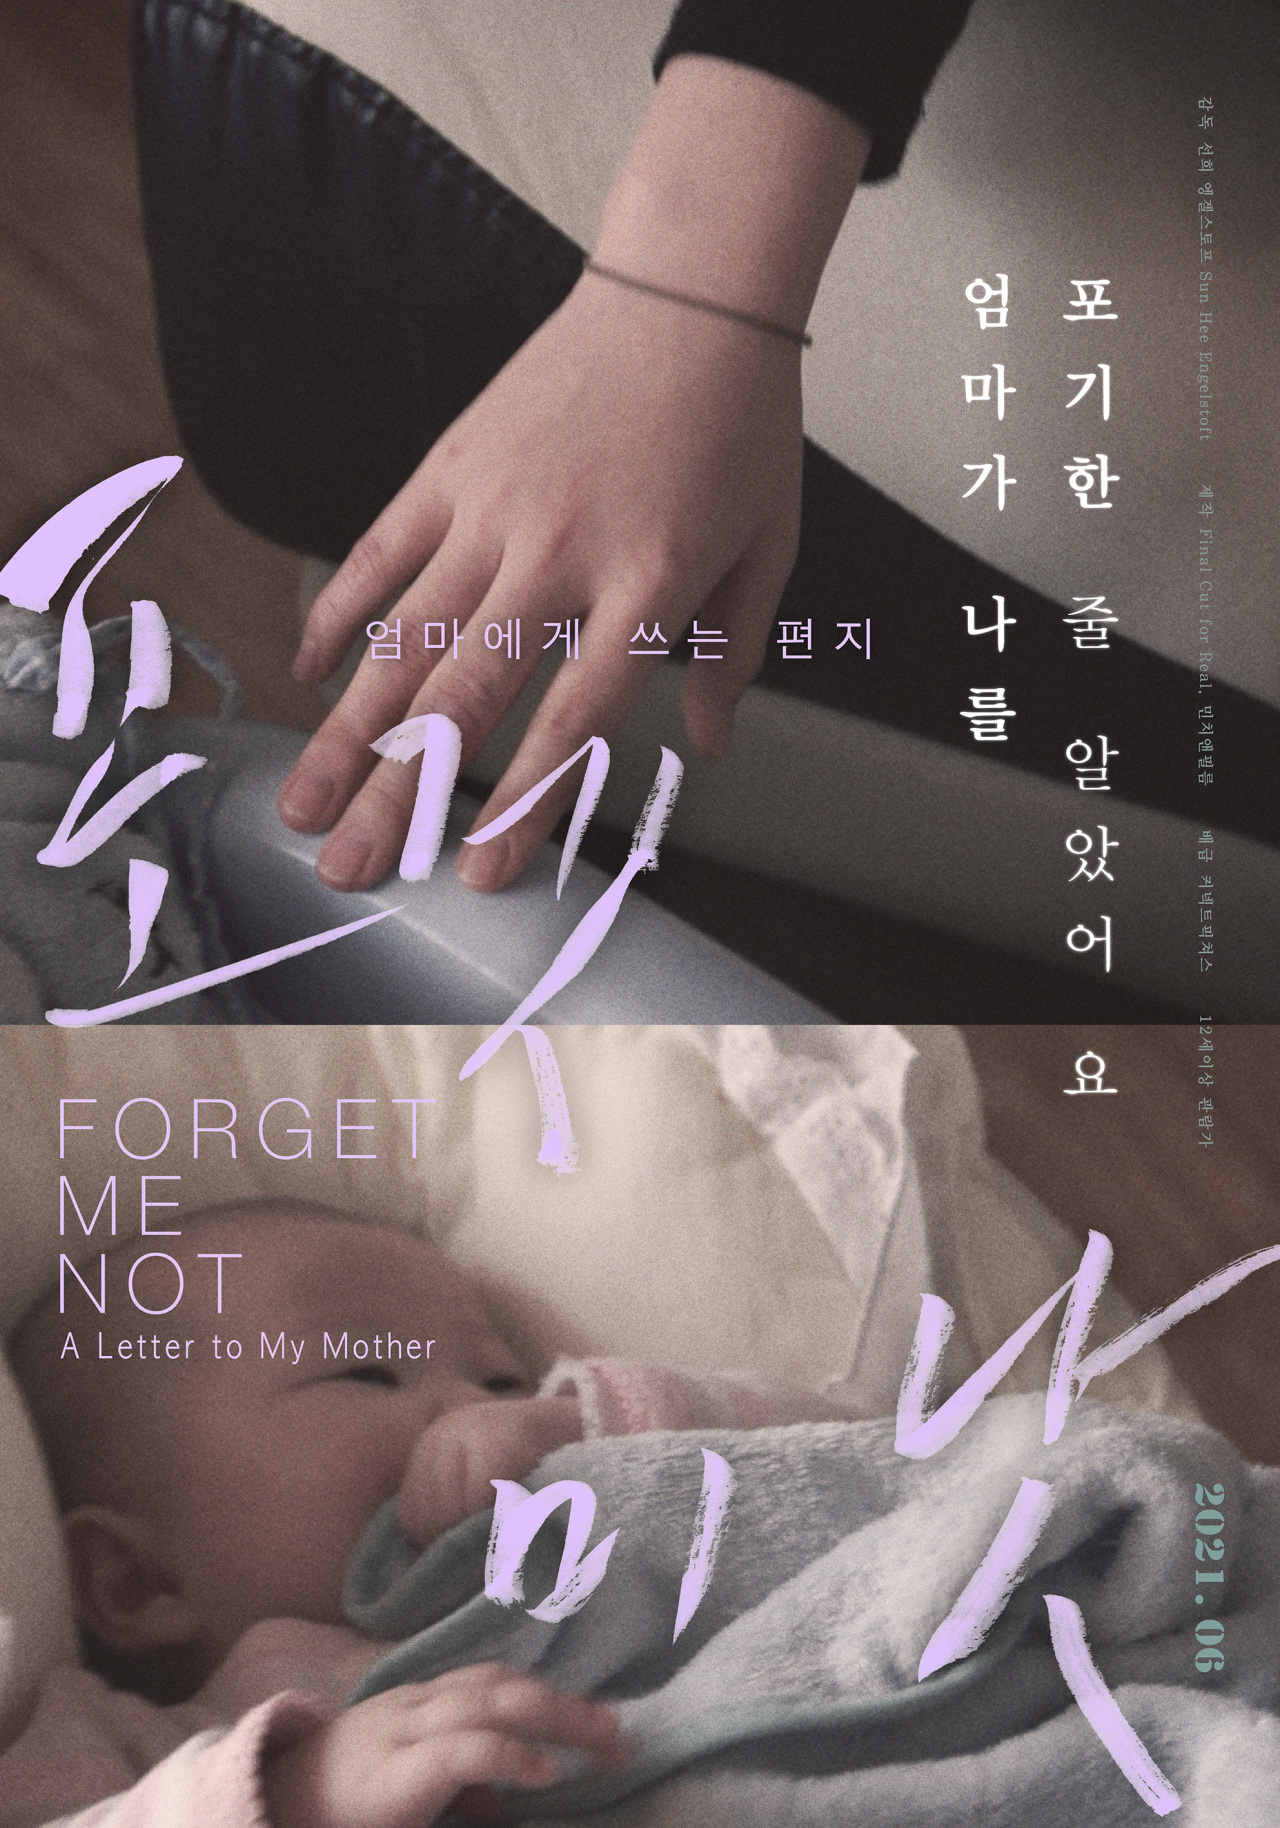 """Poster for documentary film """"Forget Me Not -- A Letter to My Mother,"""" directed by Sun Hee Engelstoft (Connect Pictures)"""